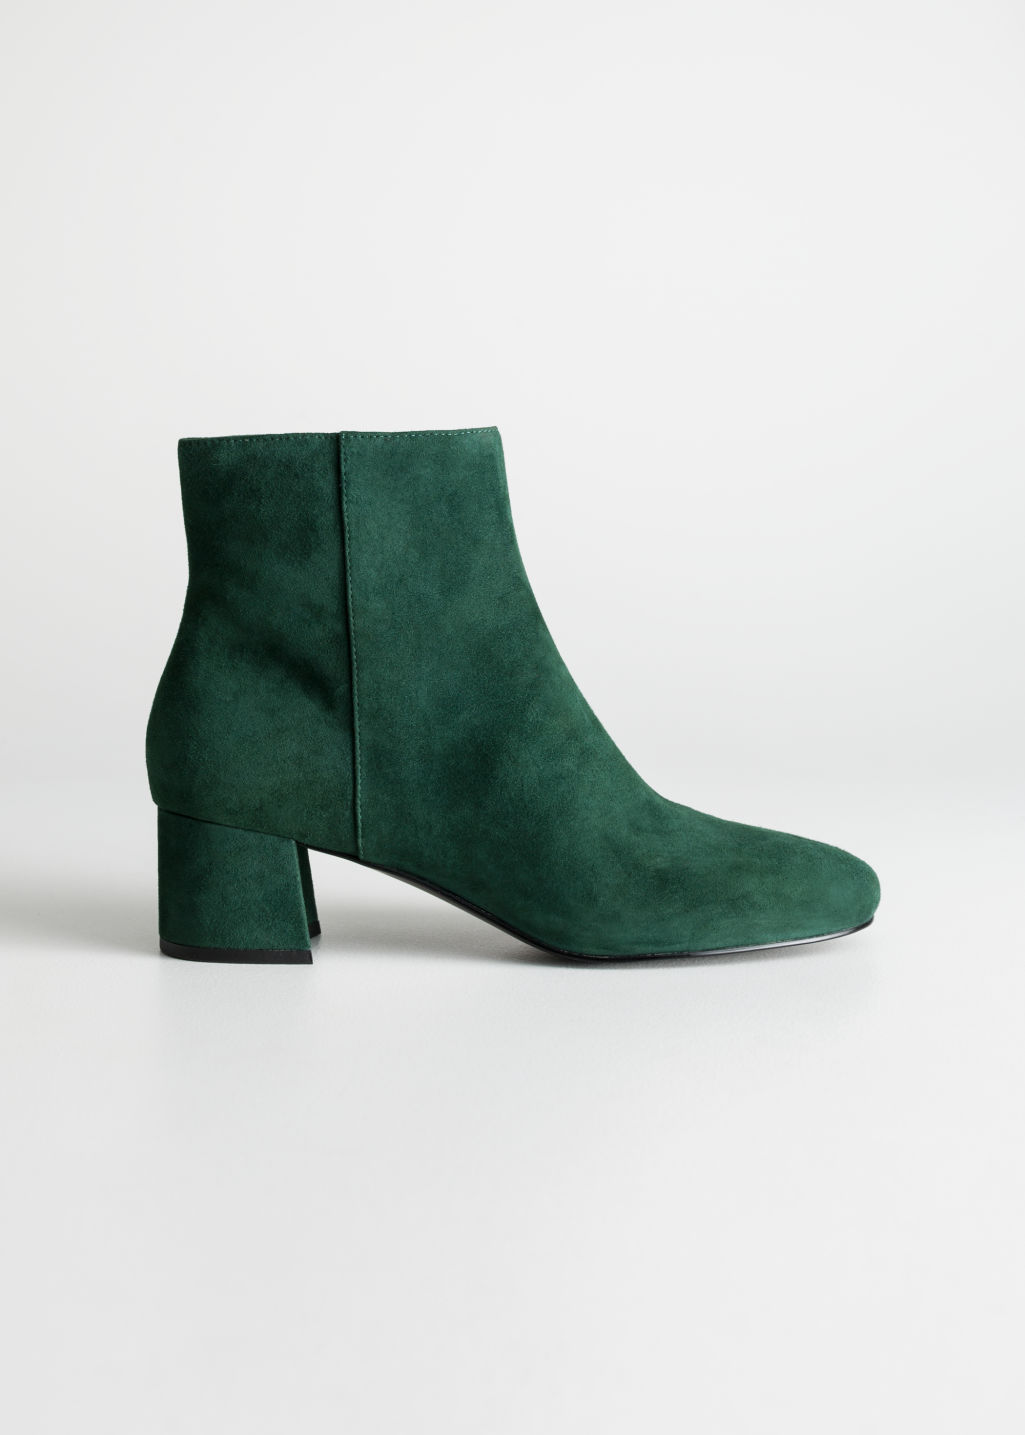 Suede Ankle Boots - Emerald Green - Ankleboots - & Other